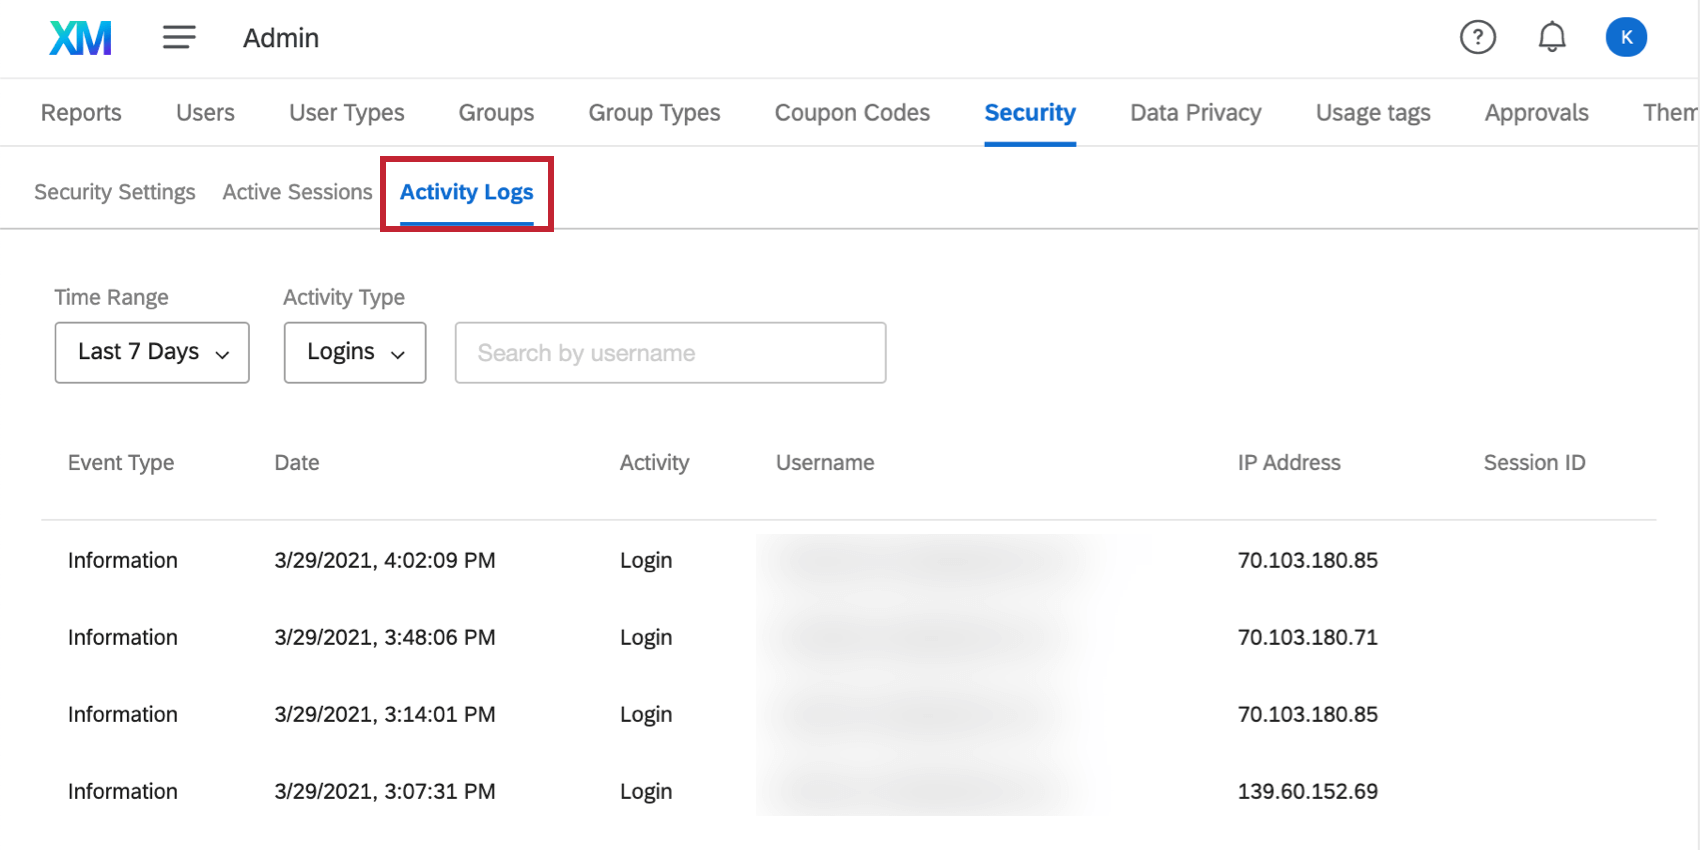 Activity Logs section of the Security tab